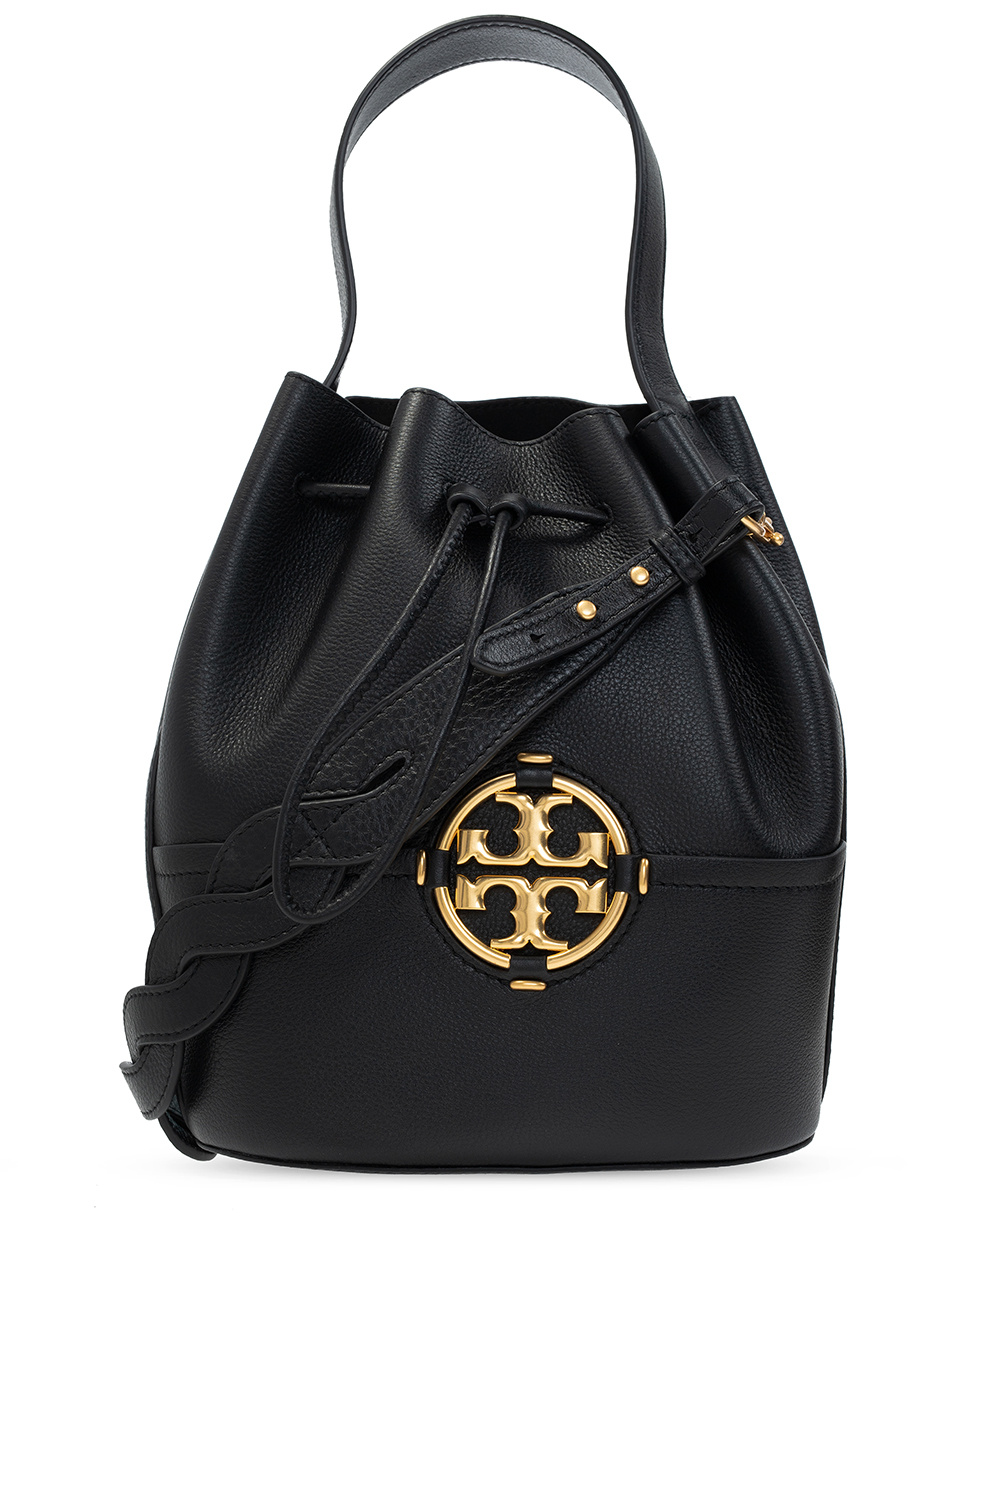 Tory Burch 'T Monogram' shoulder bag